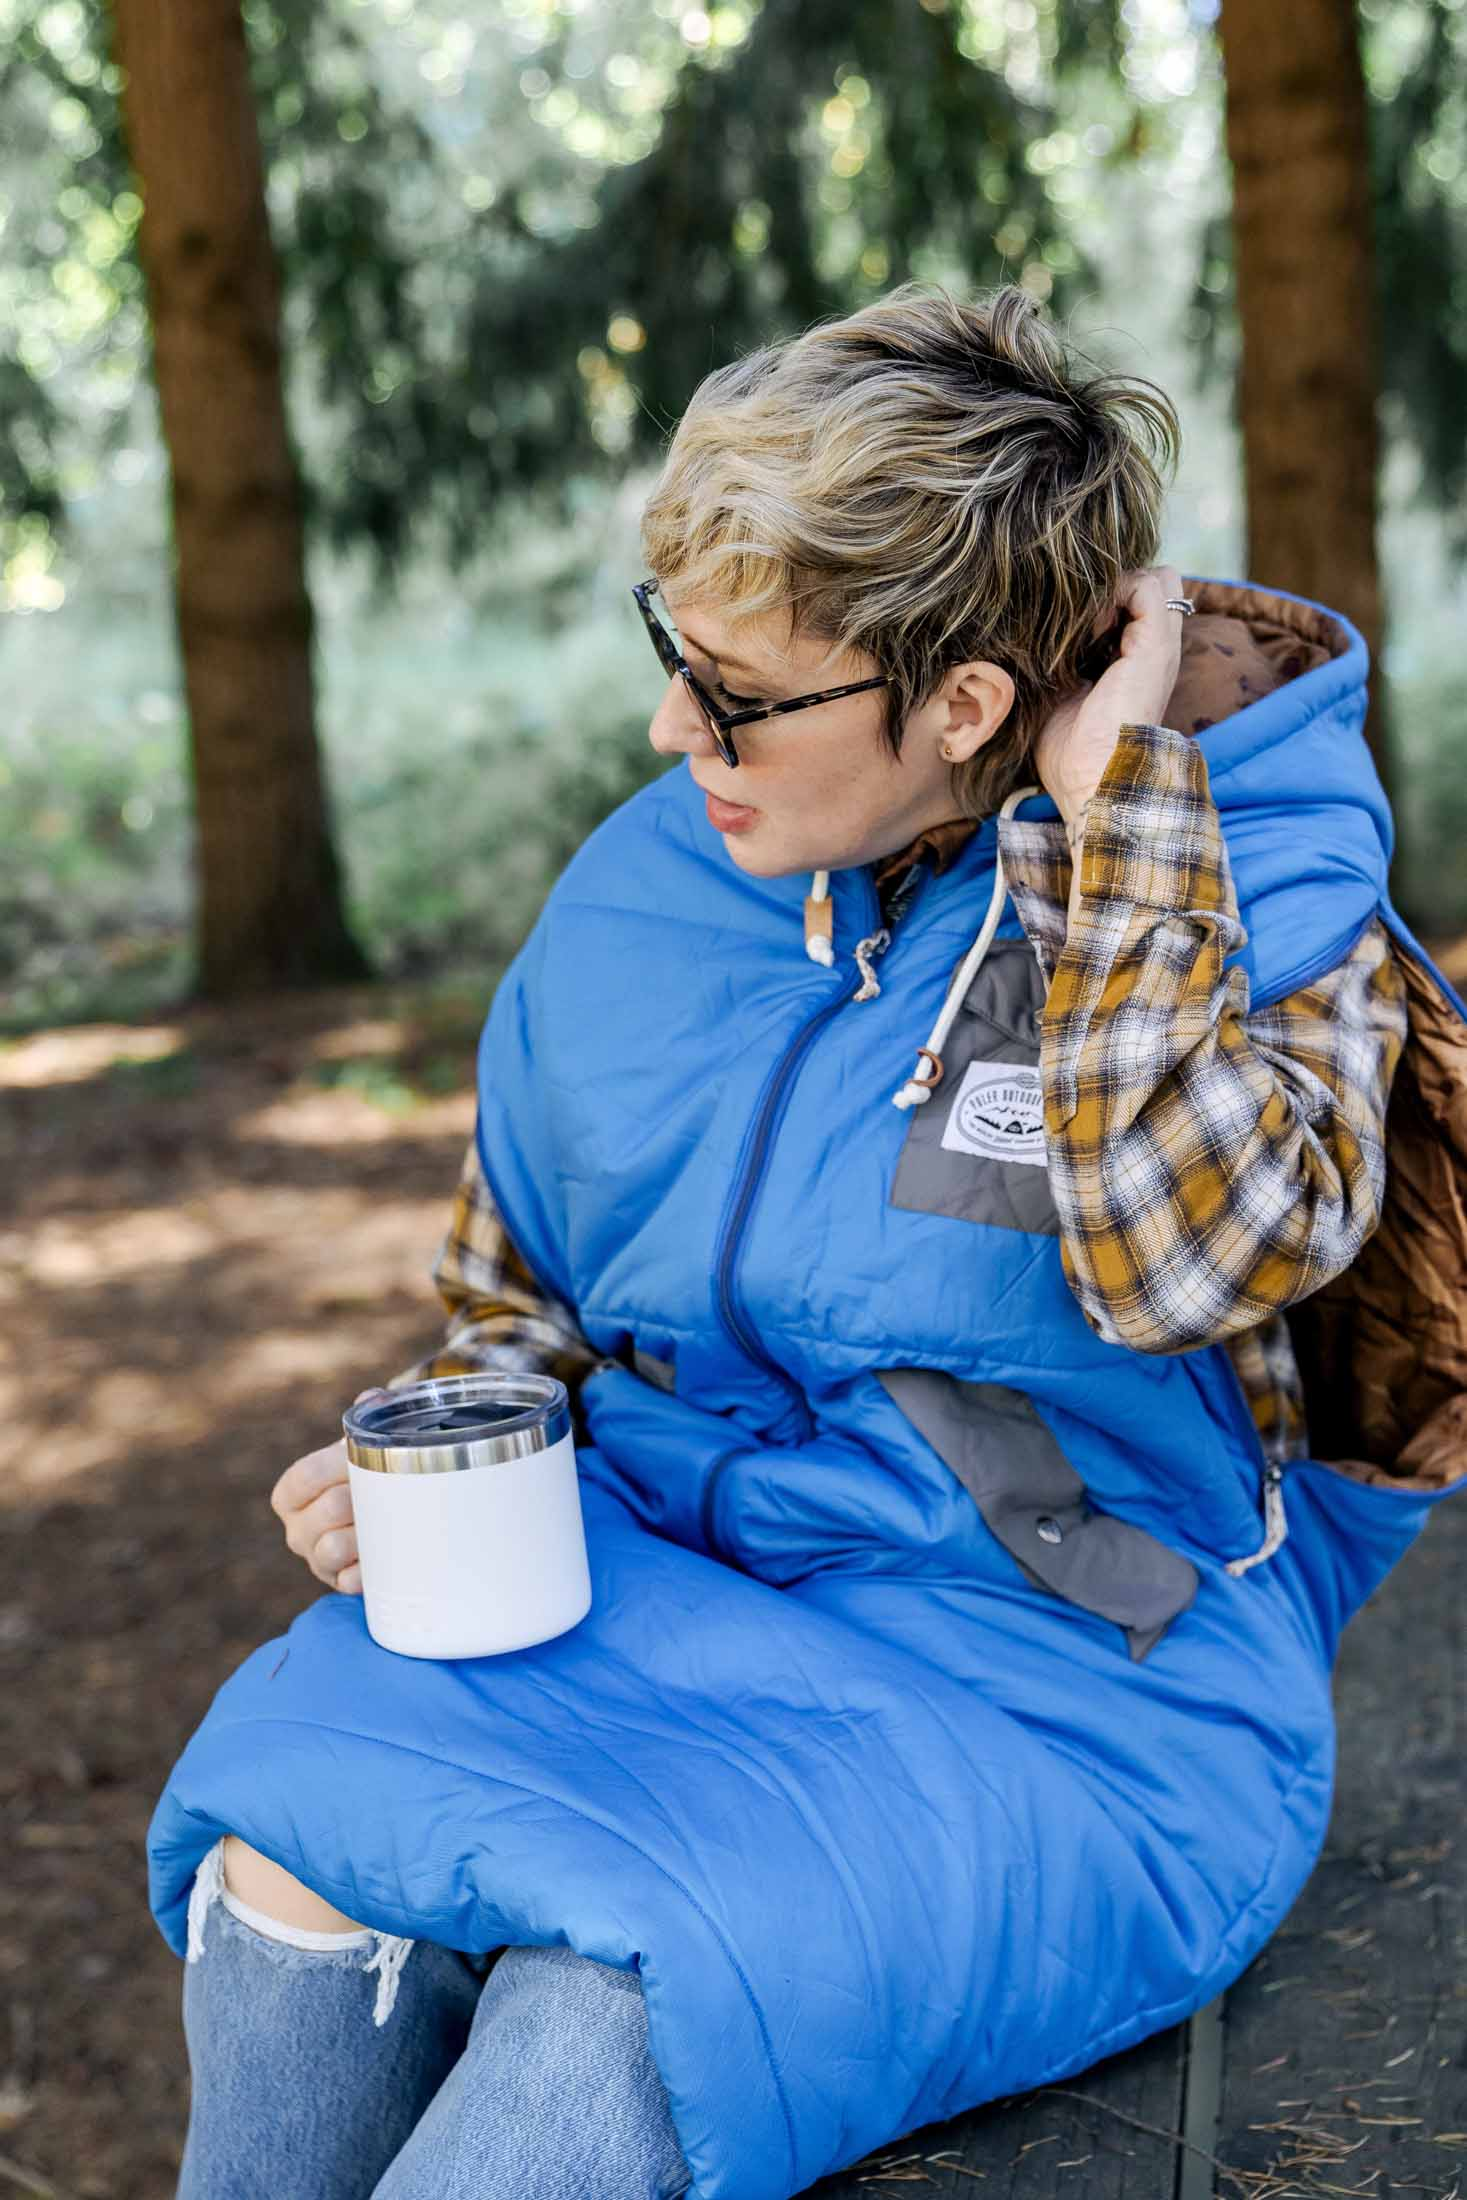 I have strong feelings about must-have gear I bring on our camping trips to make the experience the coziest & most enjoyable. I love that all can be found at Backcountry.